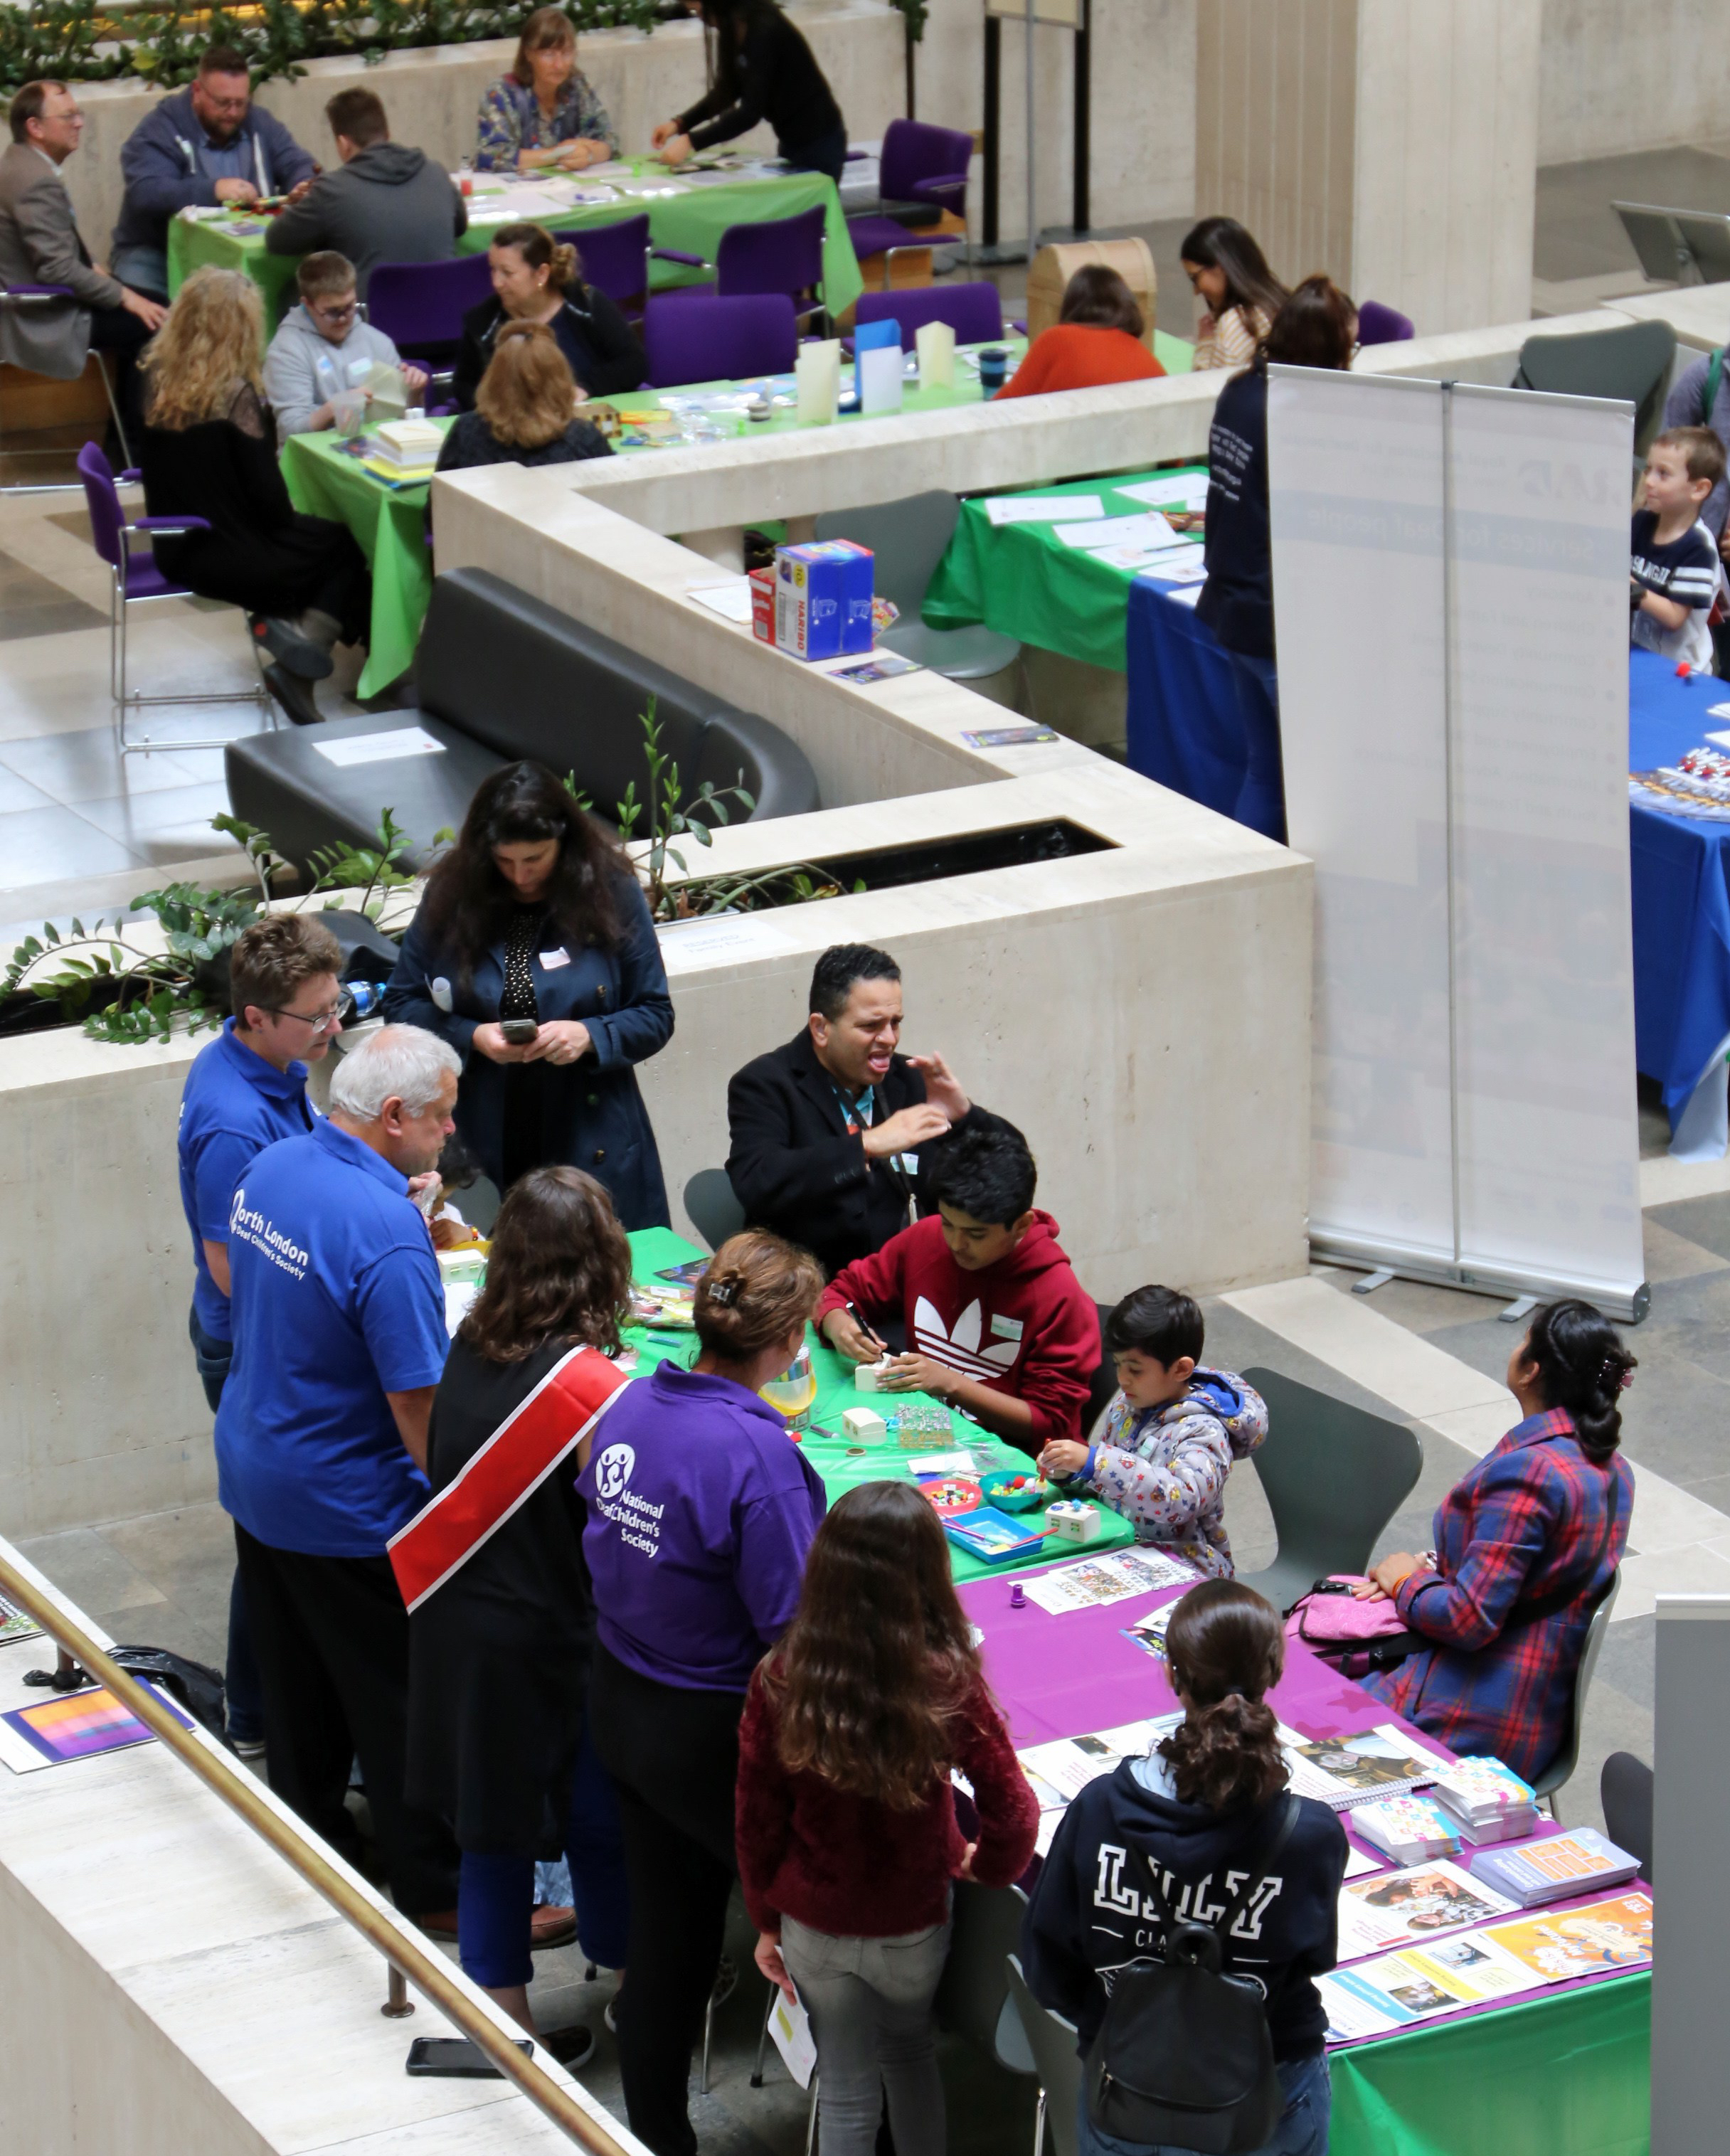 4_Festival of Treasures Family Day at the British Library, 22 September 2018